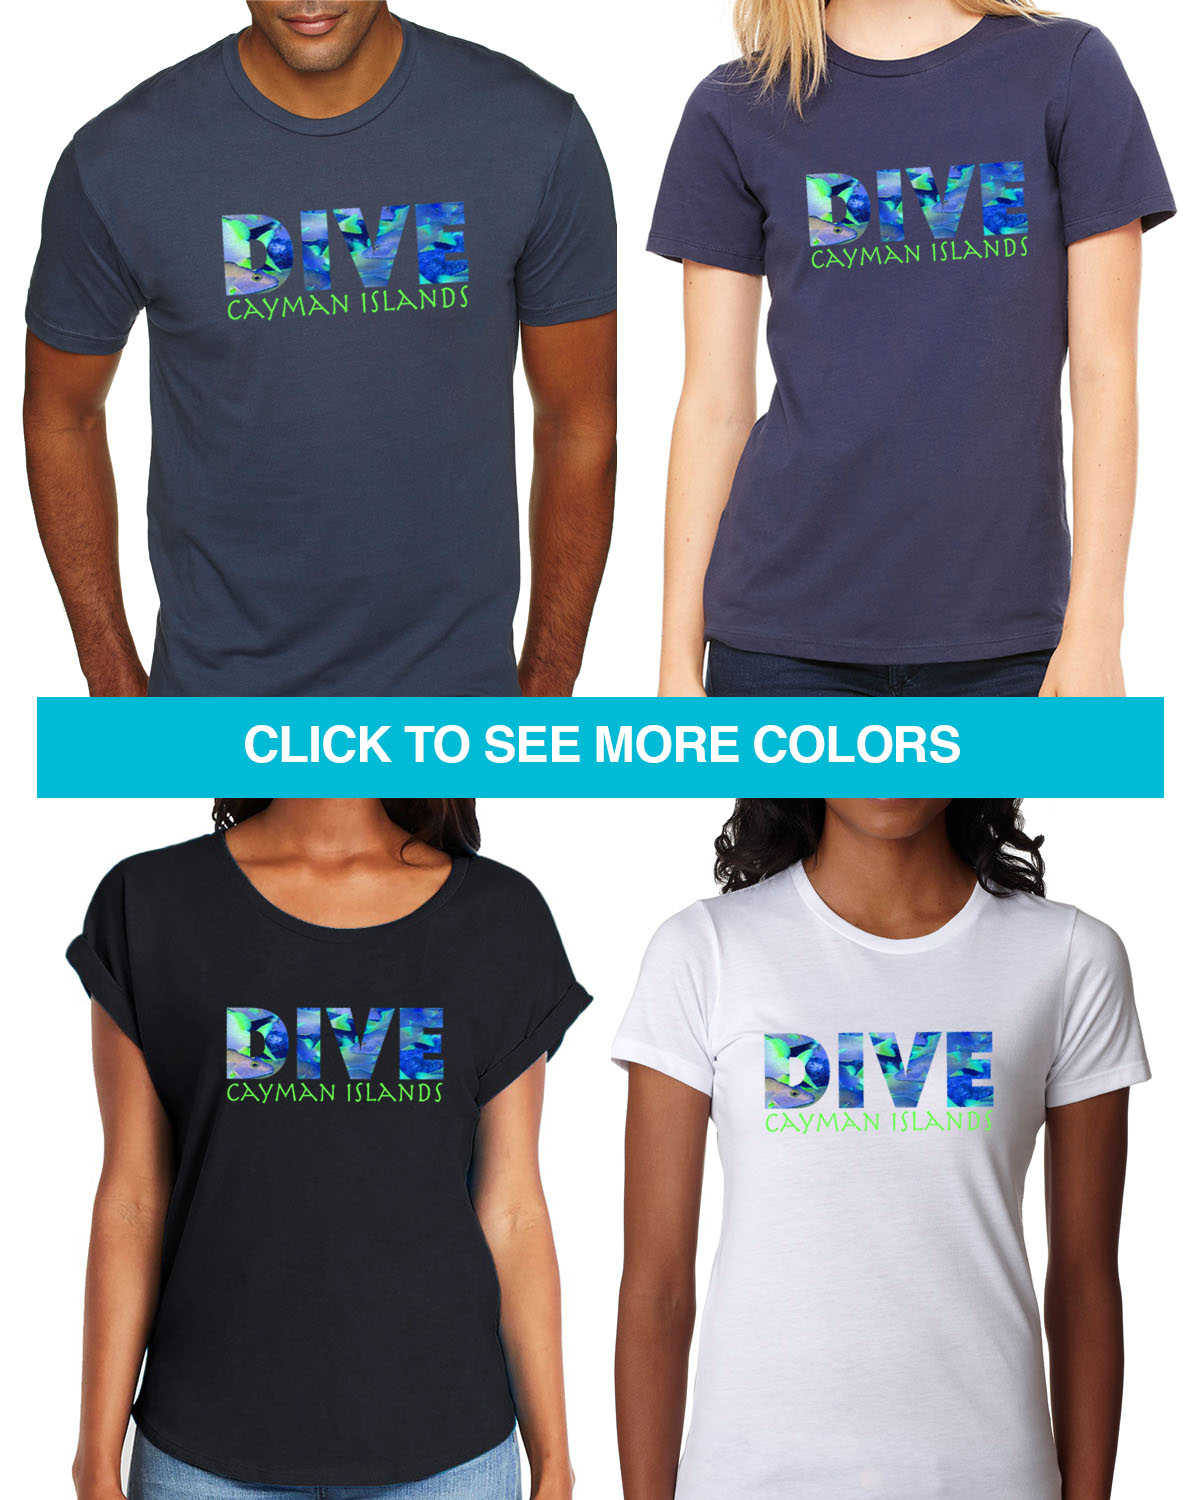 Short sleeve Dive Cayman Islands t-shirt for men and women